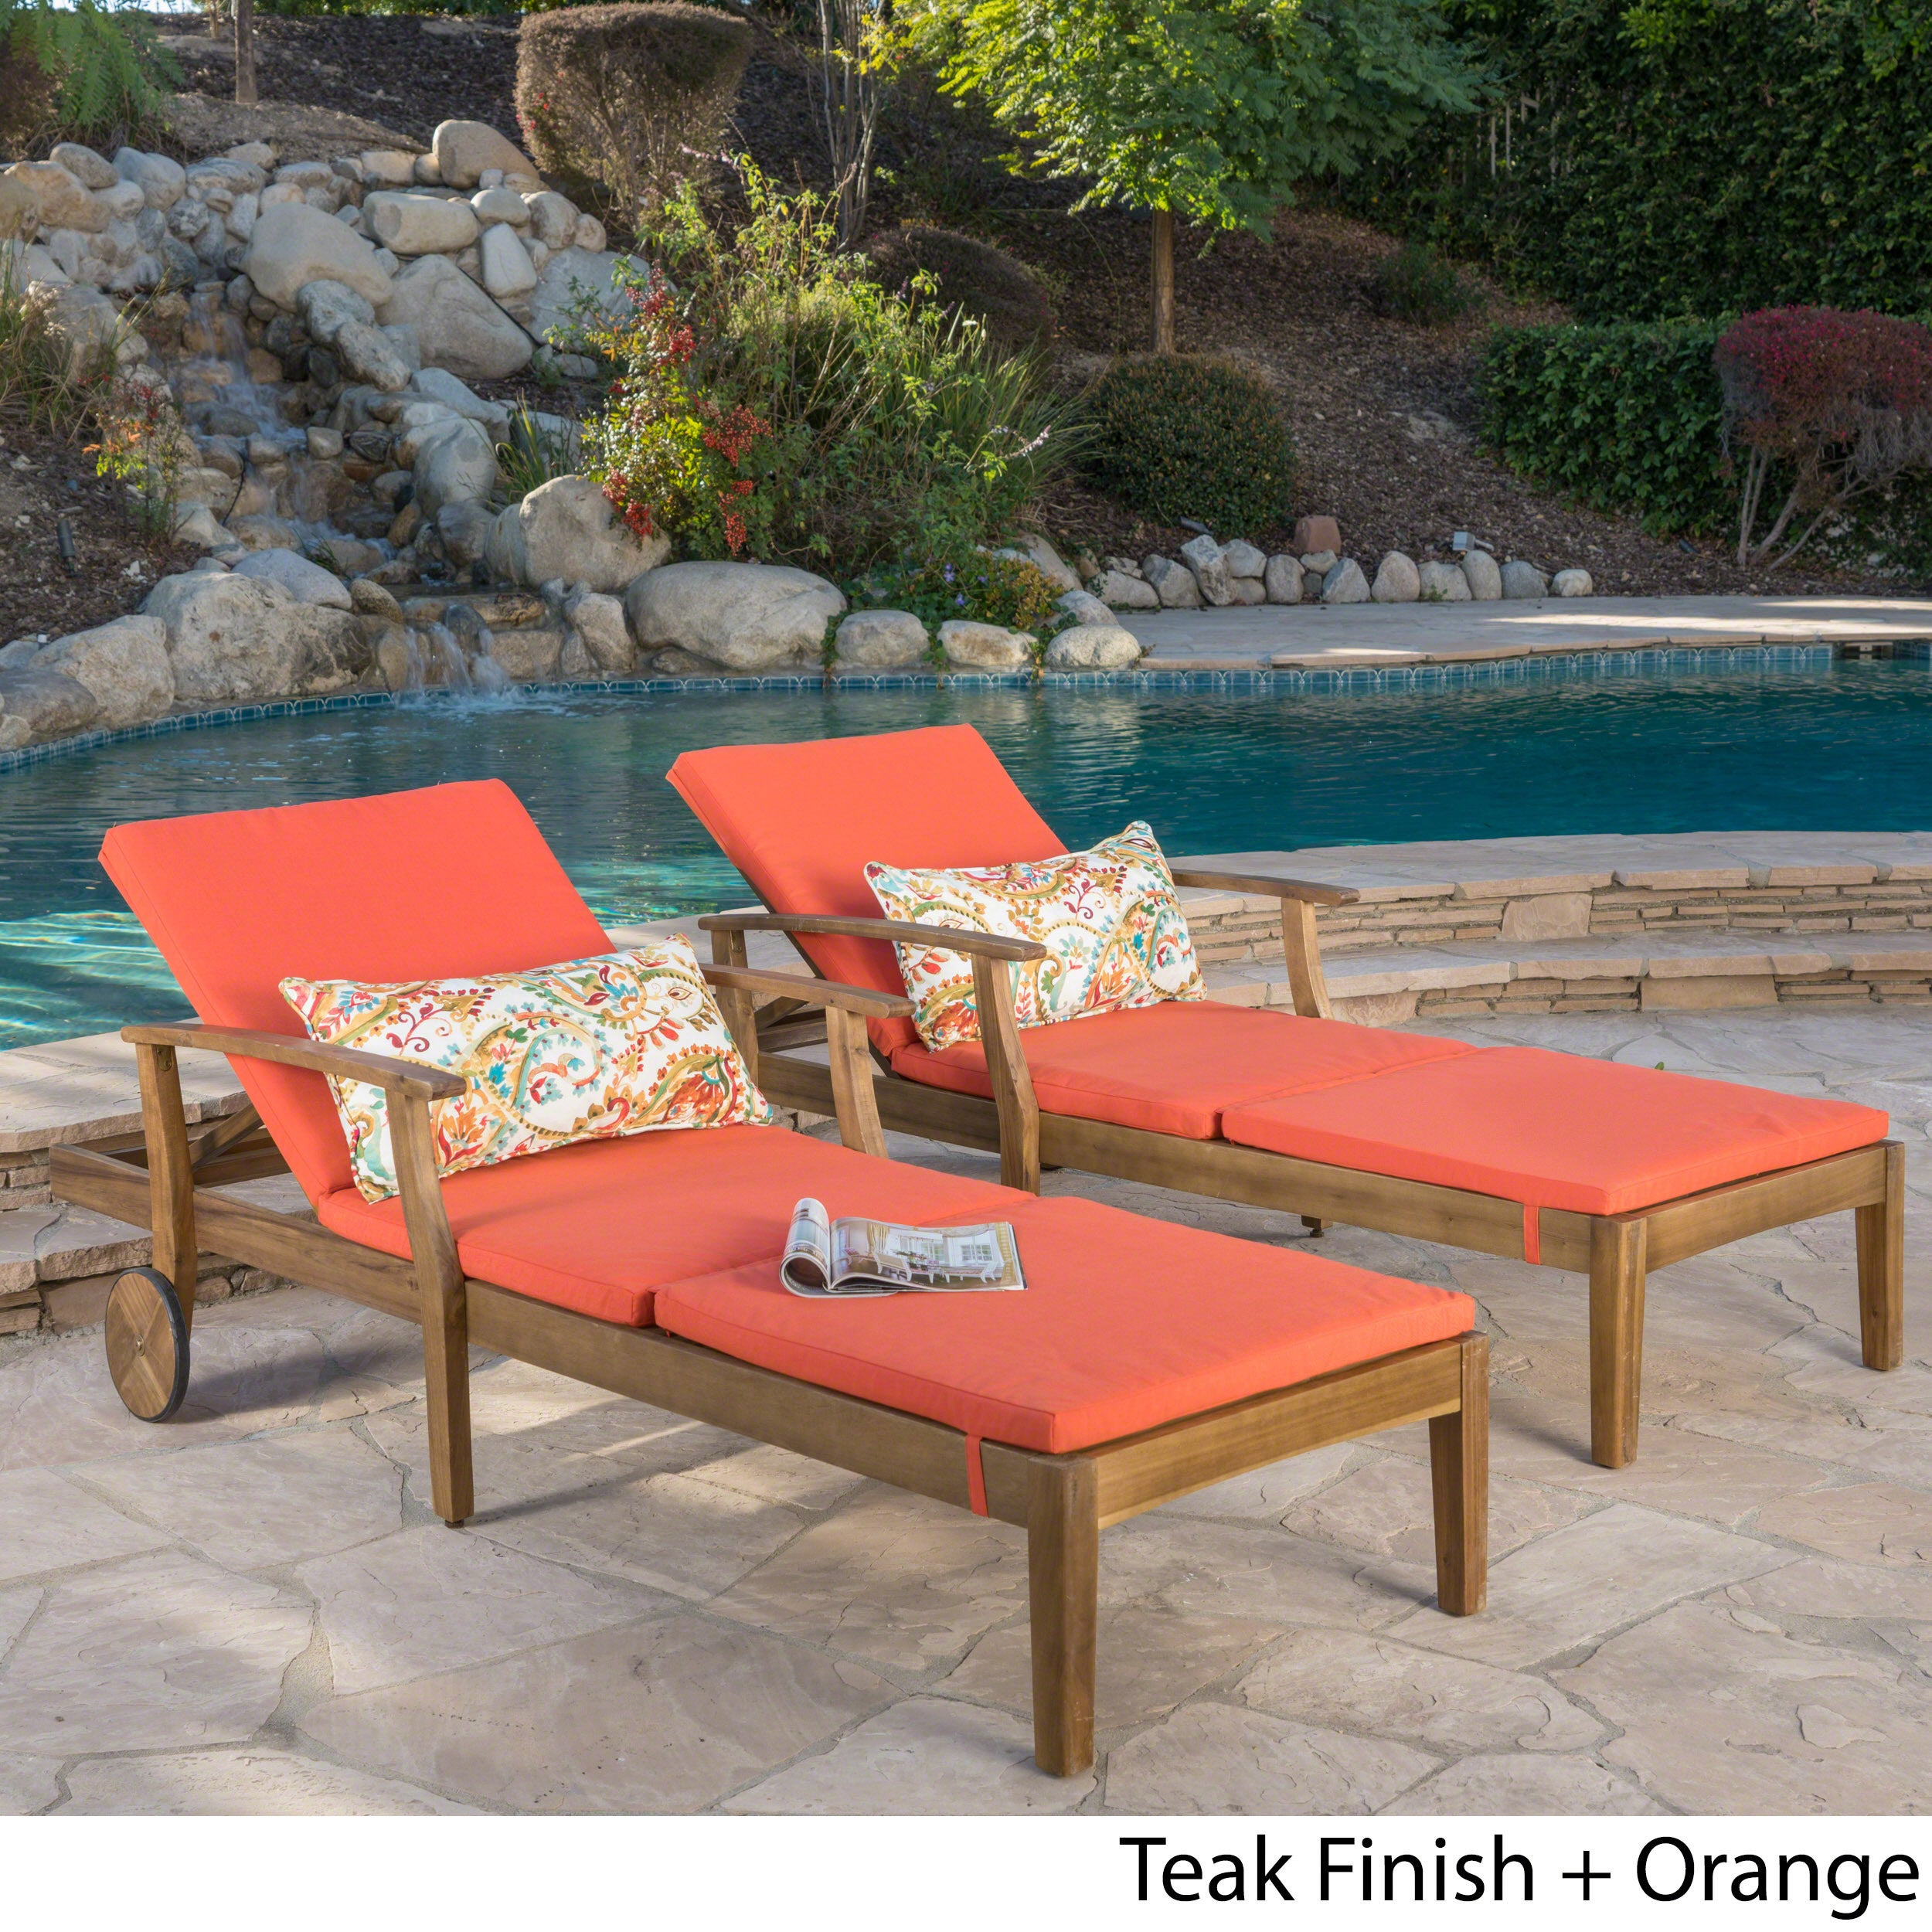 Perla Outdoor Acacia Wood Chaise Lounge with Cushion Set of 2 by Christopher Knight Home 934fee44 42e0 47f3 8287 be9f6ae1e957